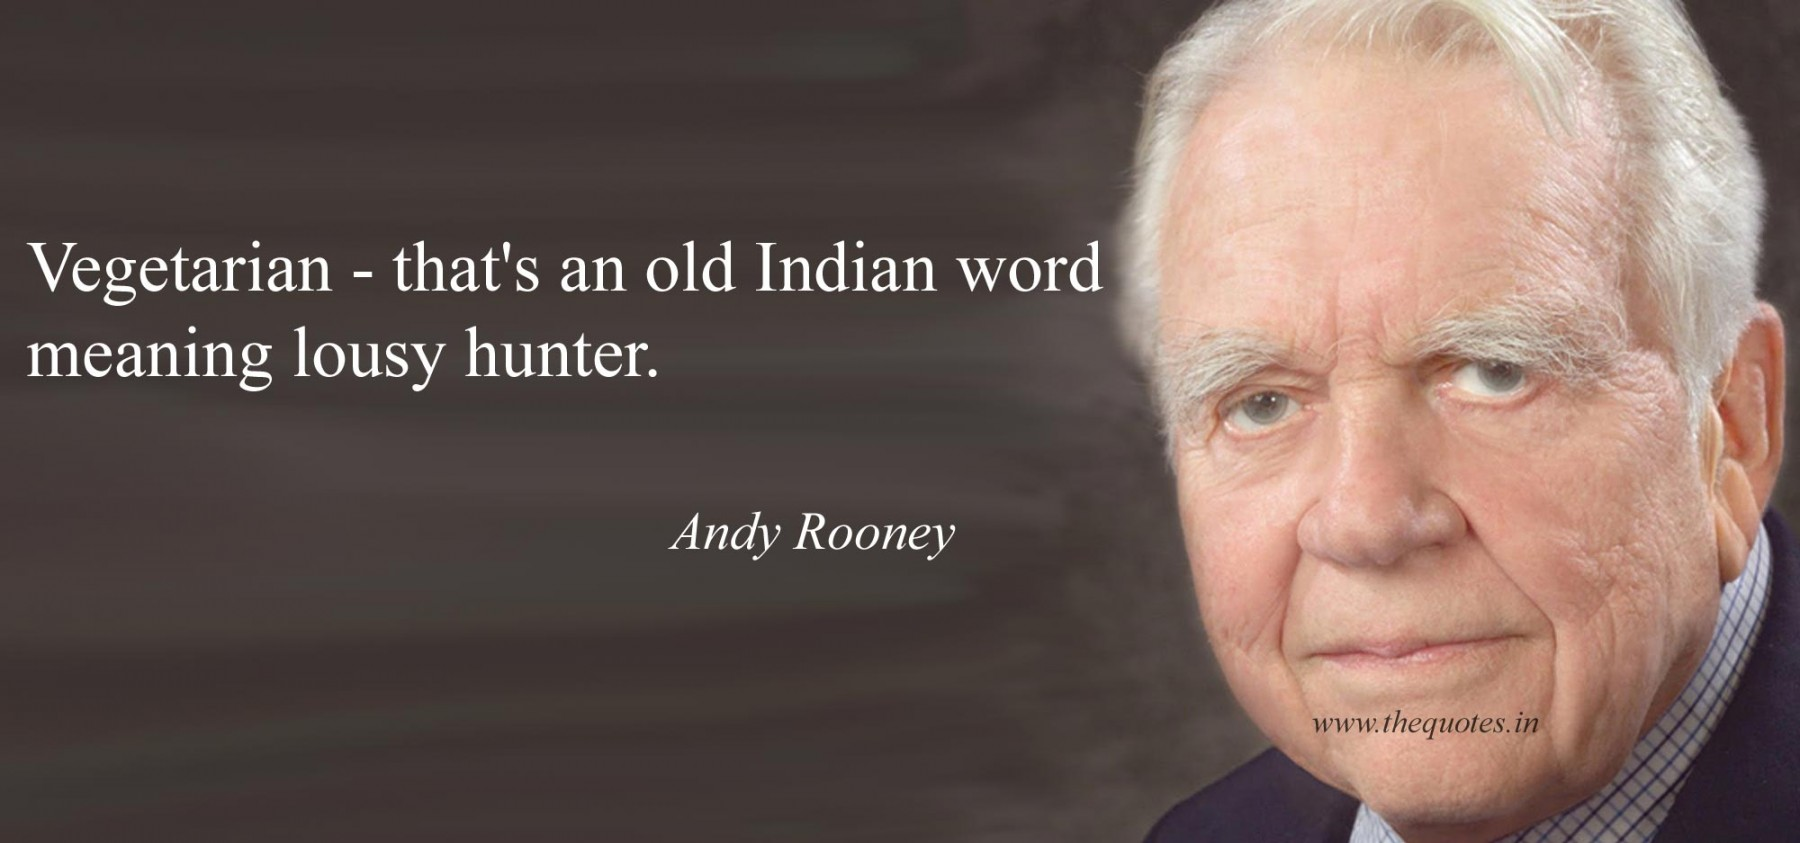 andy-rooney-quotes-4.jpg